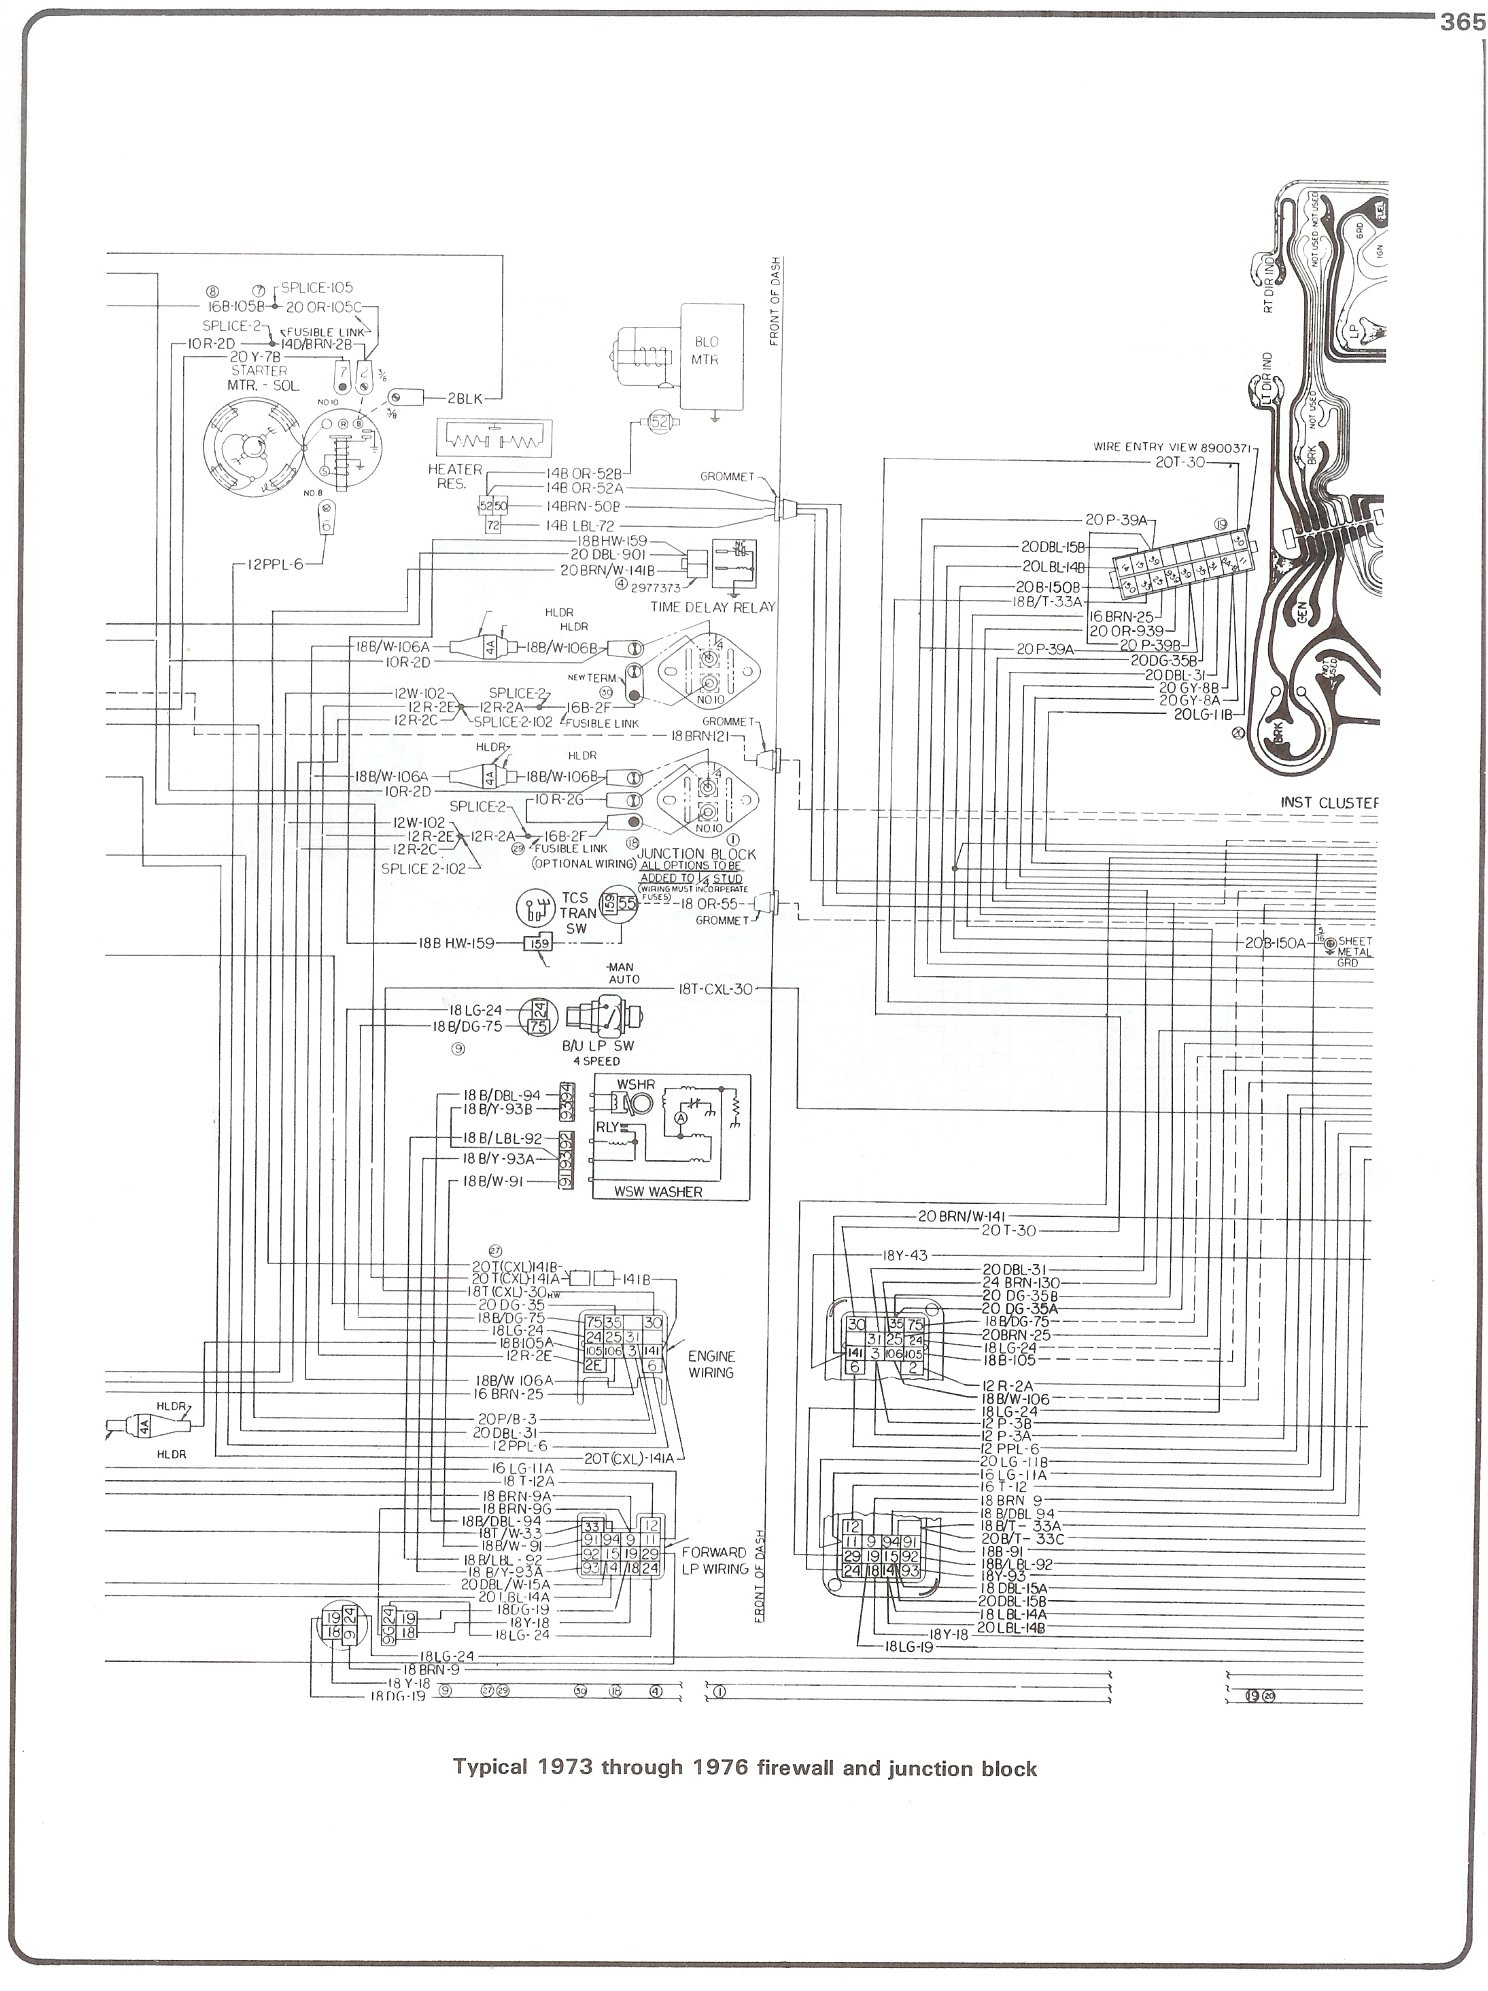 73 76_firewall_junct complete 73 87 wiring diagrams 1989 Chevy 1500 Wiring Diagram at crackthecode.co